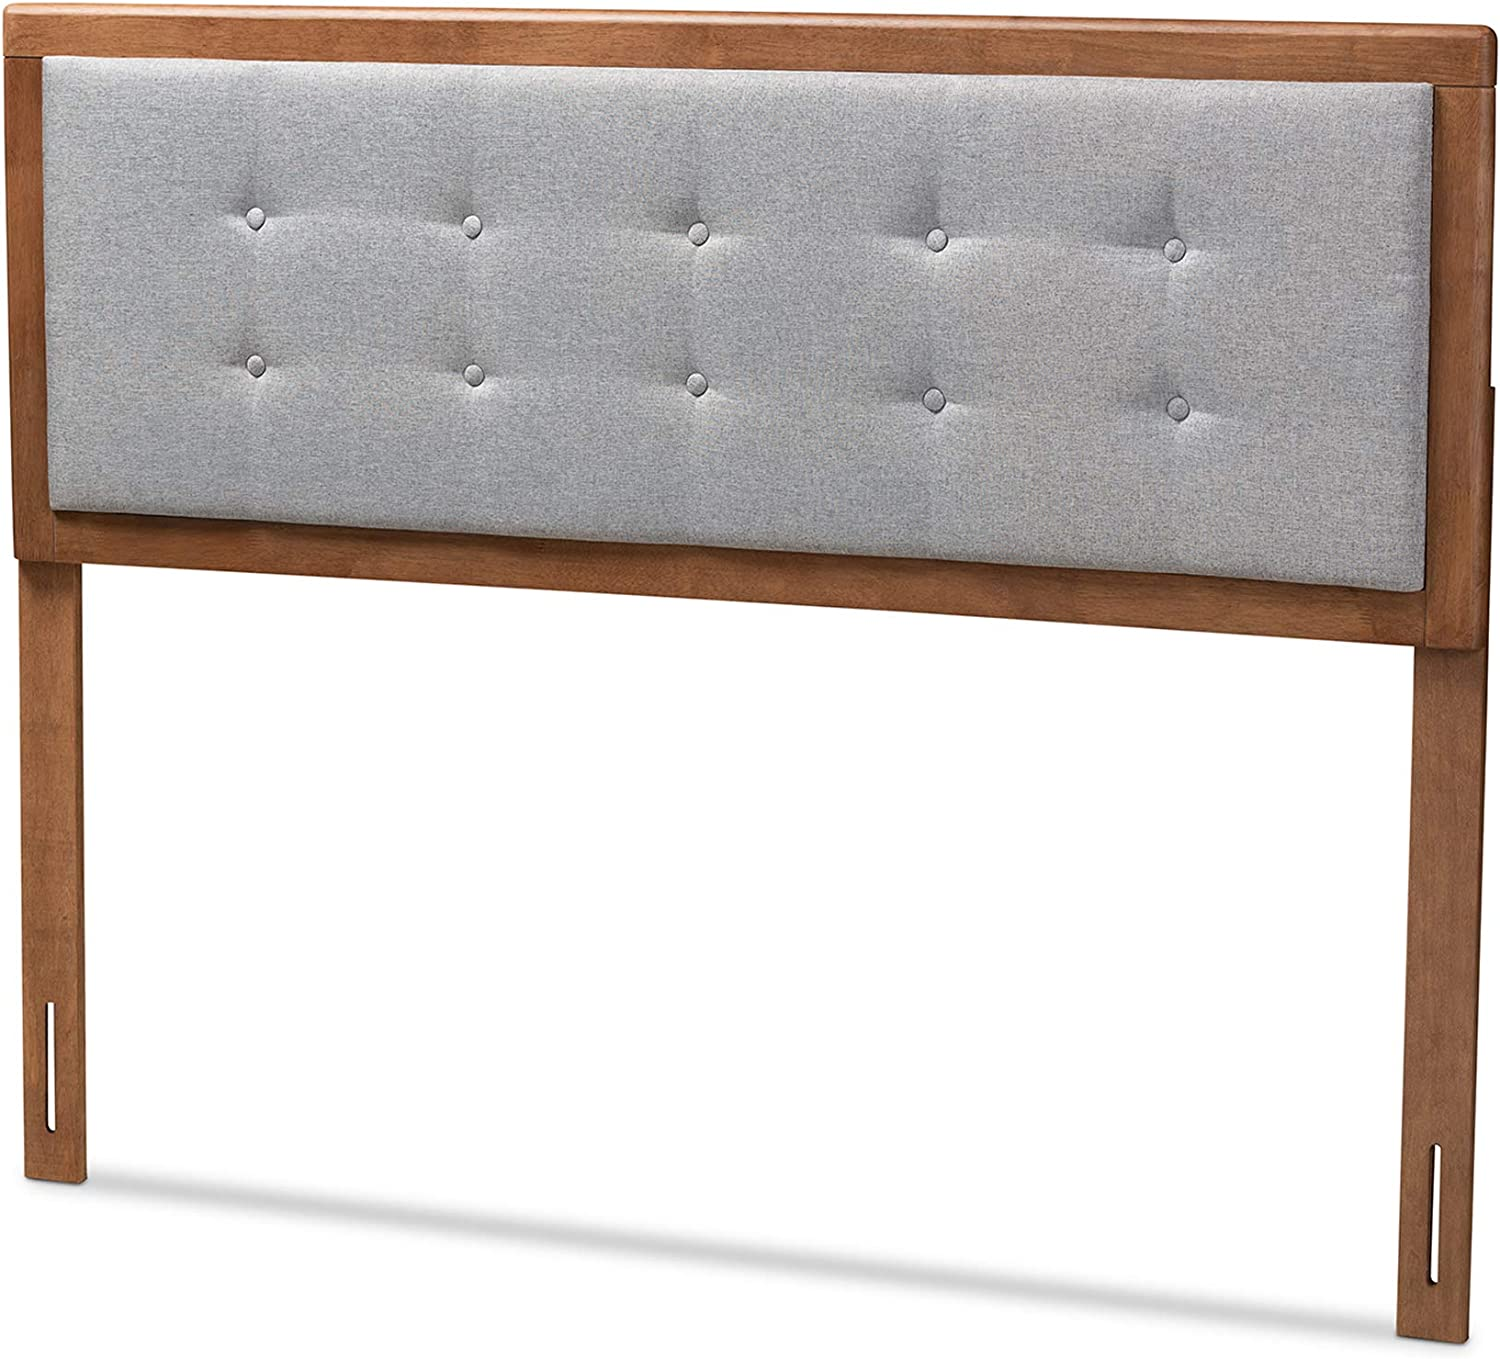 Baxton Studio Headboards, Queen, Gray Walnut